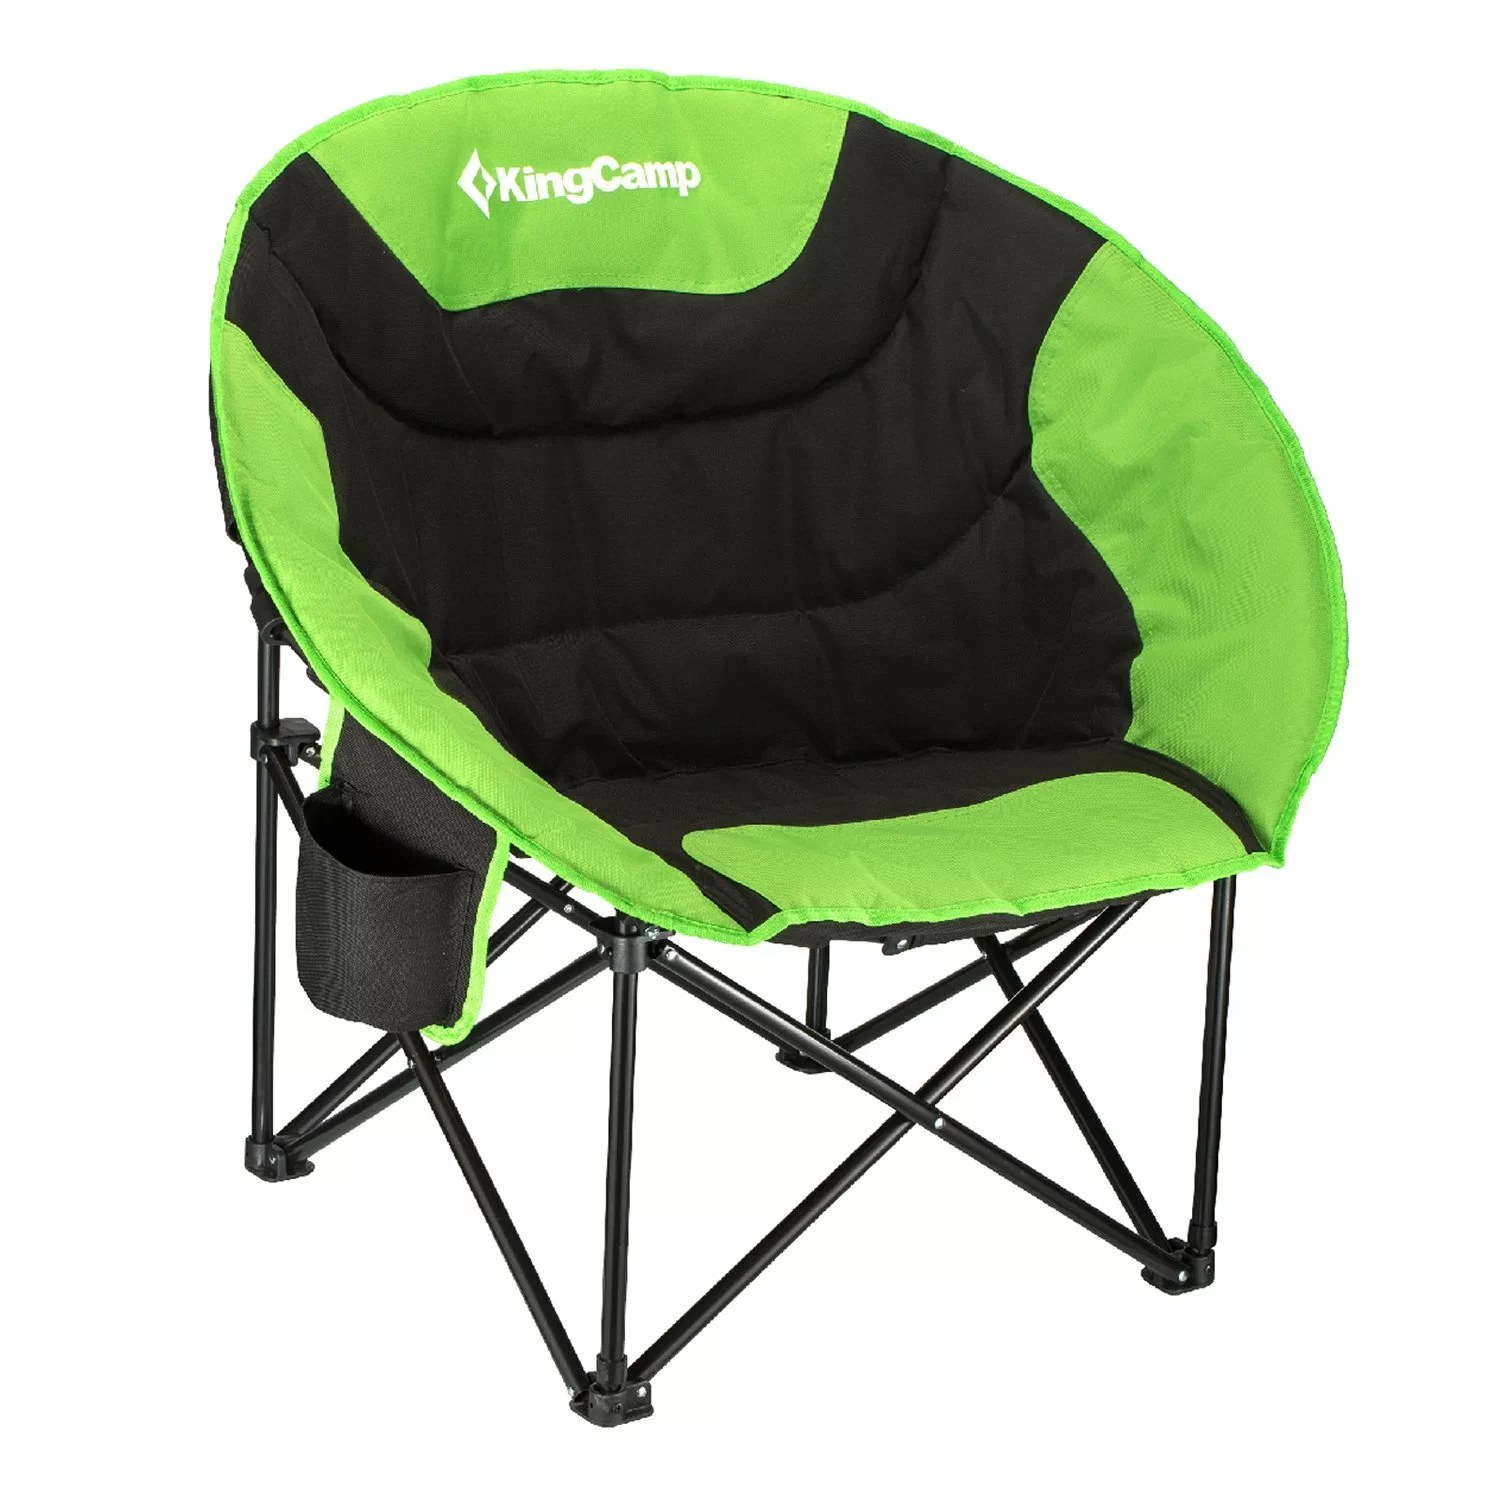 Folding Camp Chair Moon Saucer Folding Camping Chair With Carry Bag